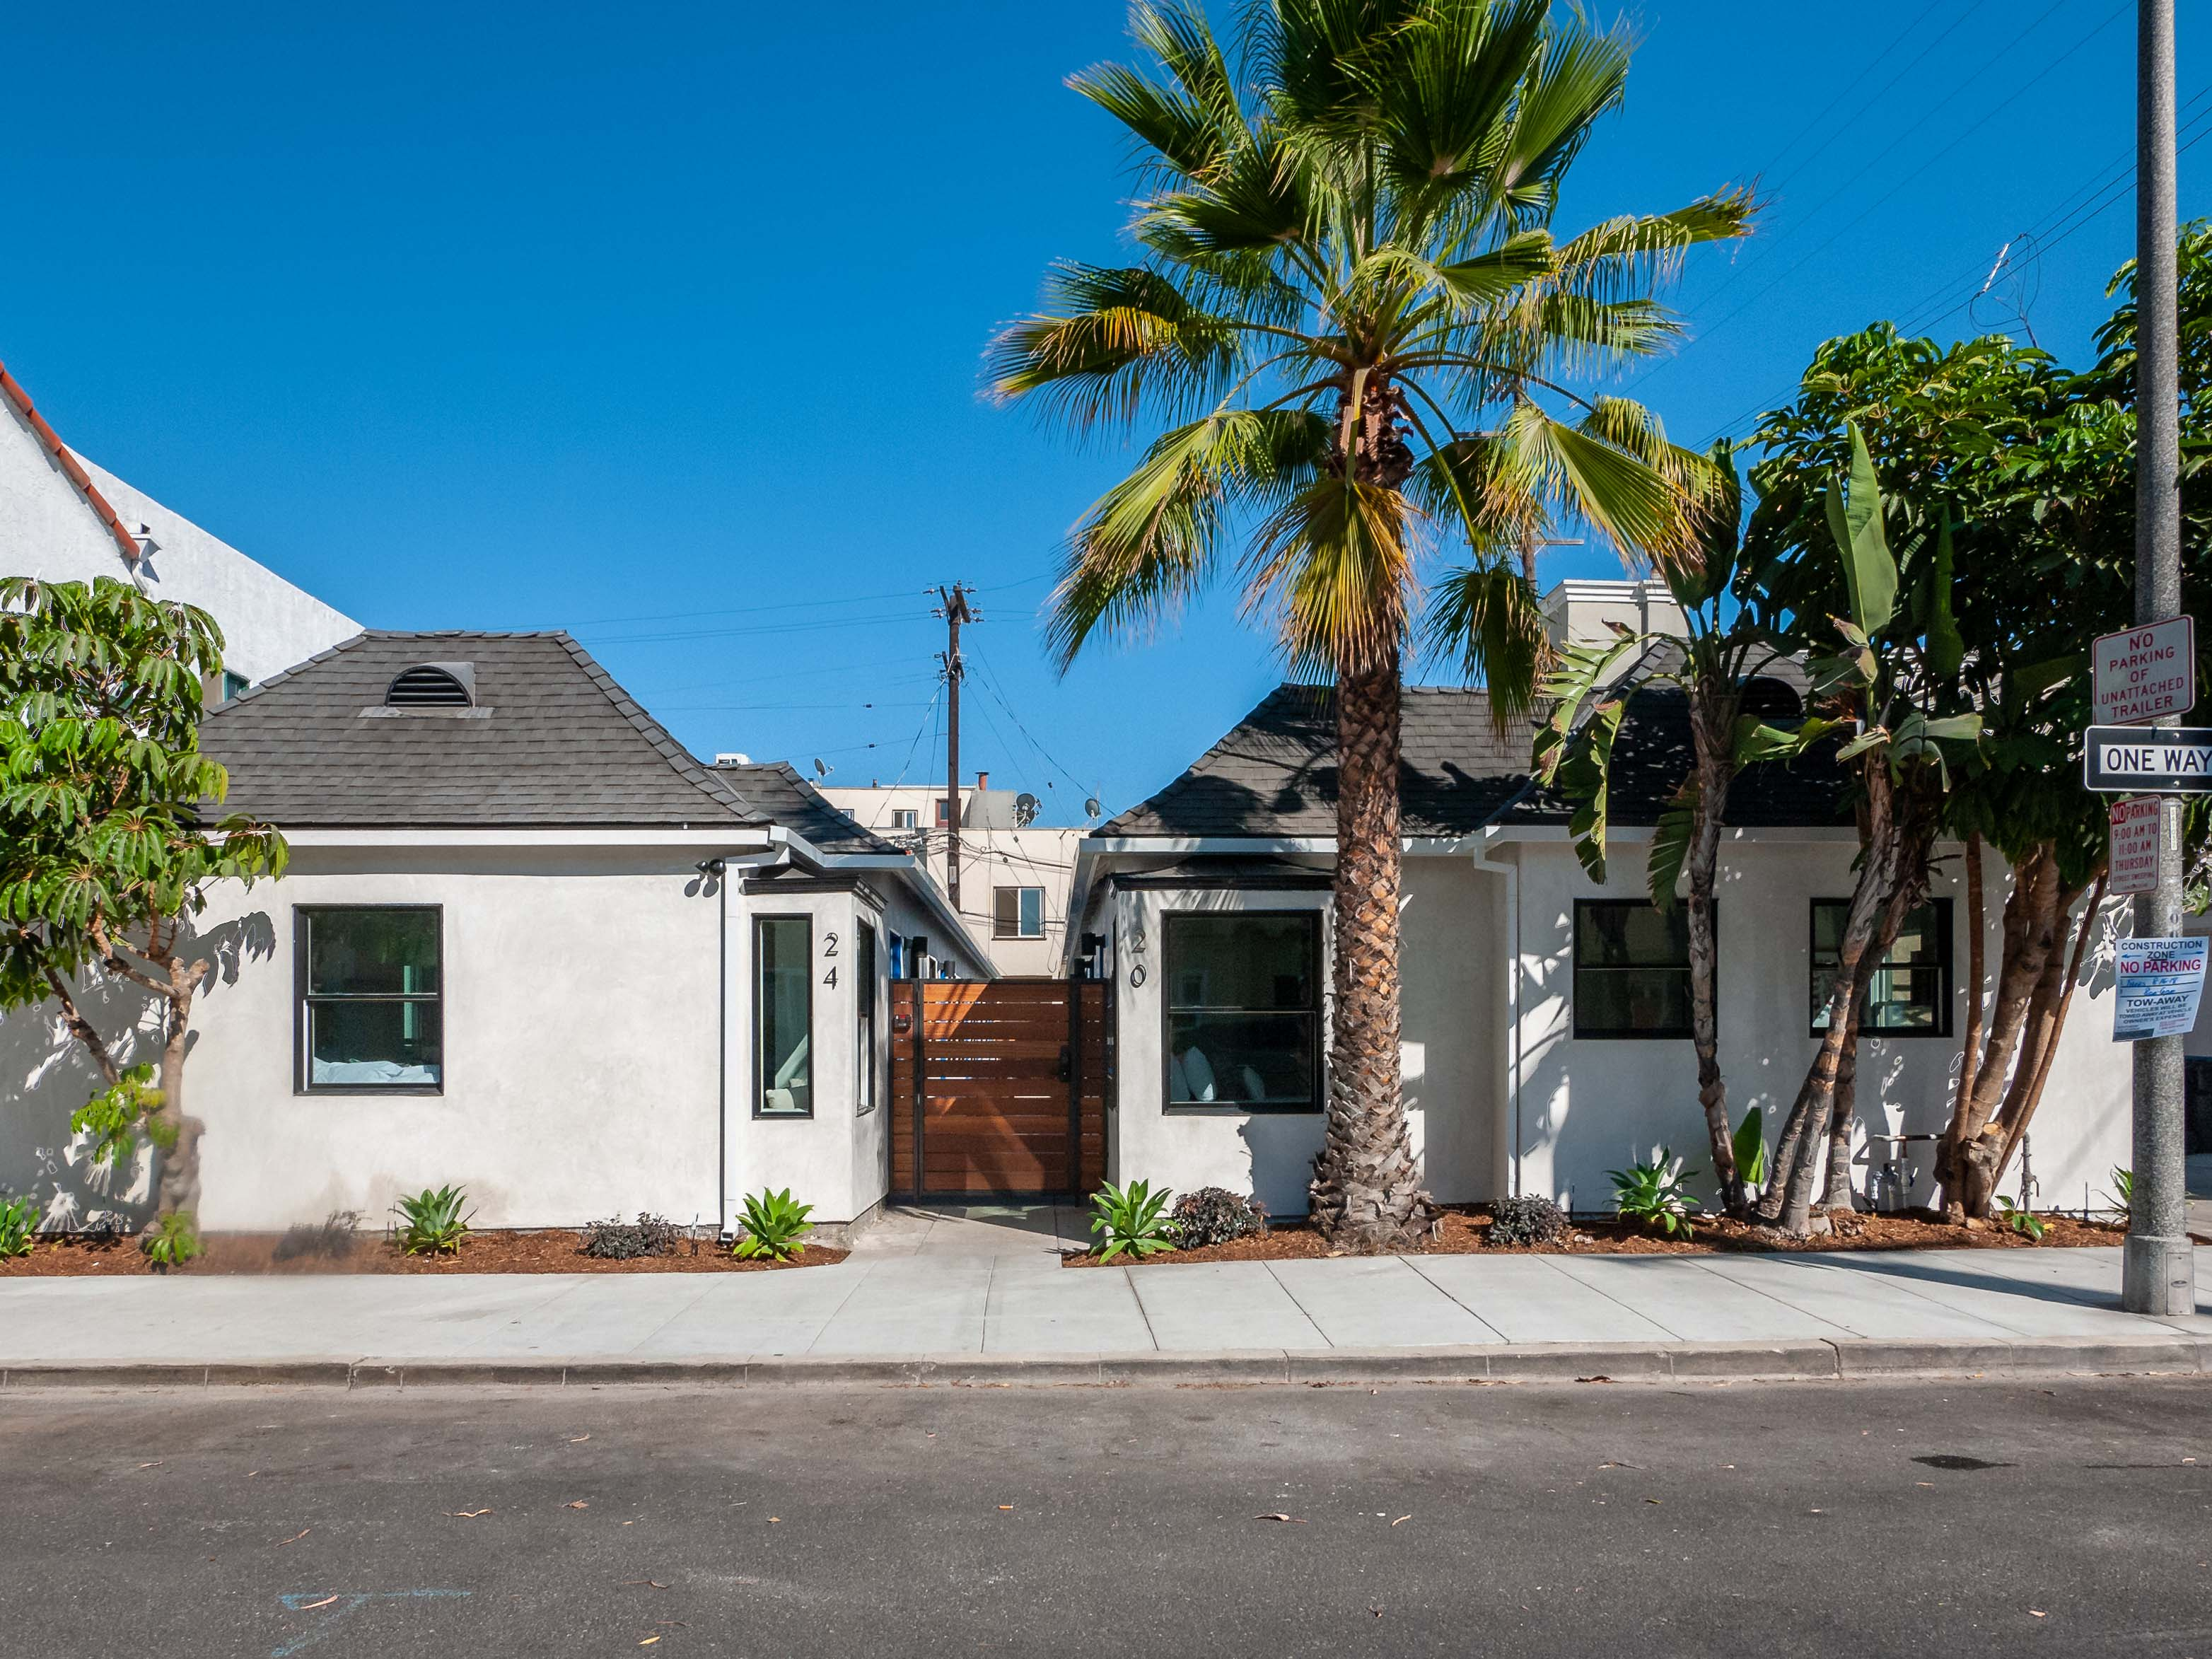 COMPLETELY REMODELED BUNGALOWS IN BELMONT SHORES | SLEEK STUDIOS | WALKING DISTANCE TO THE BEACH